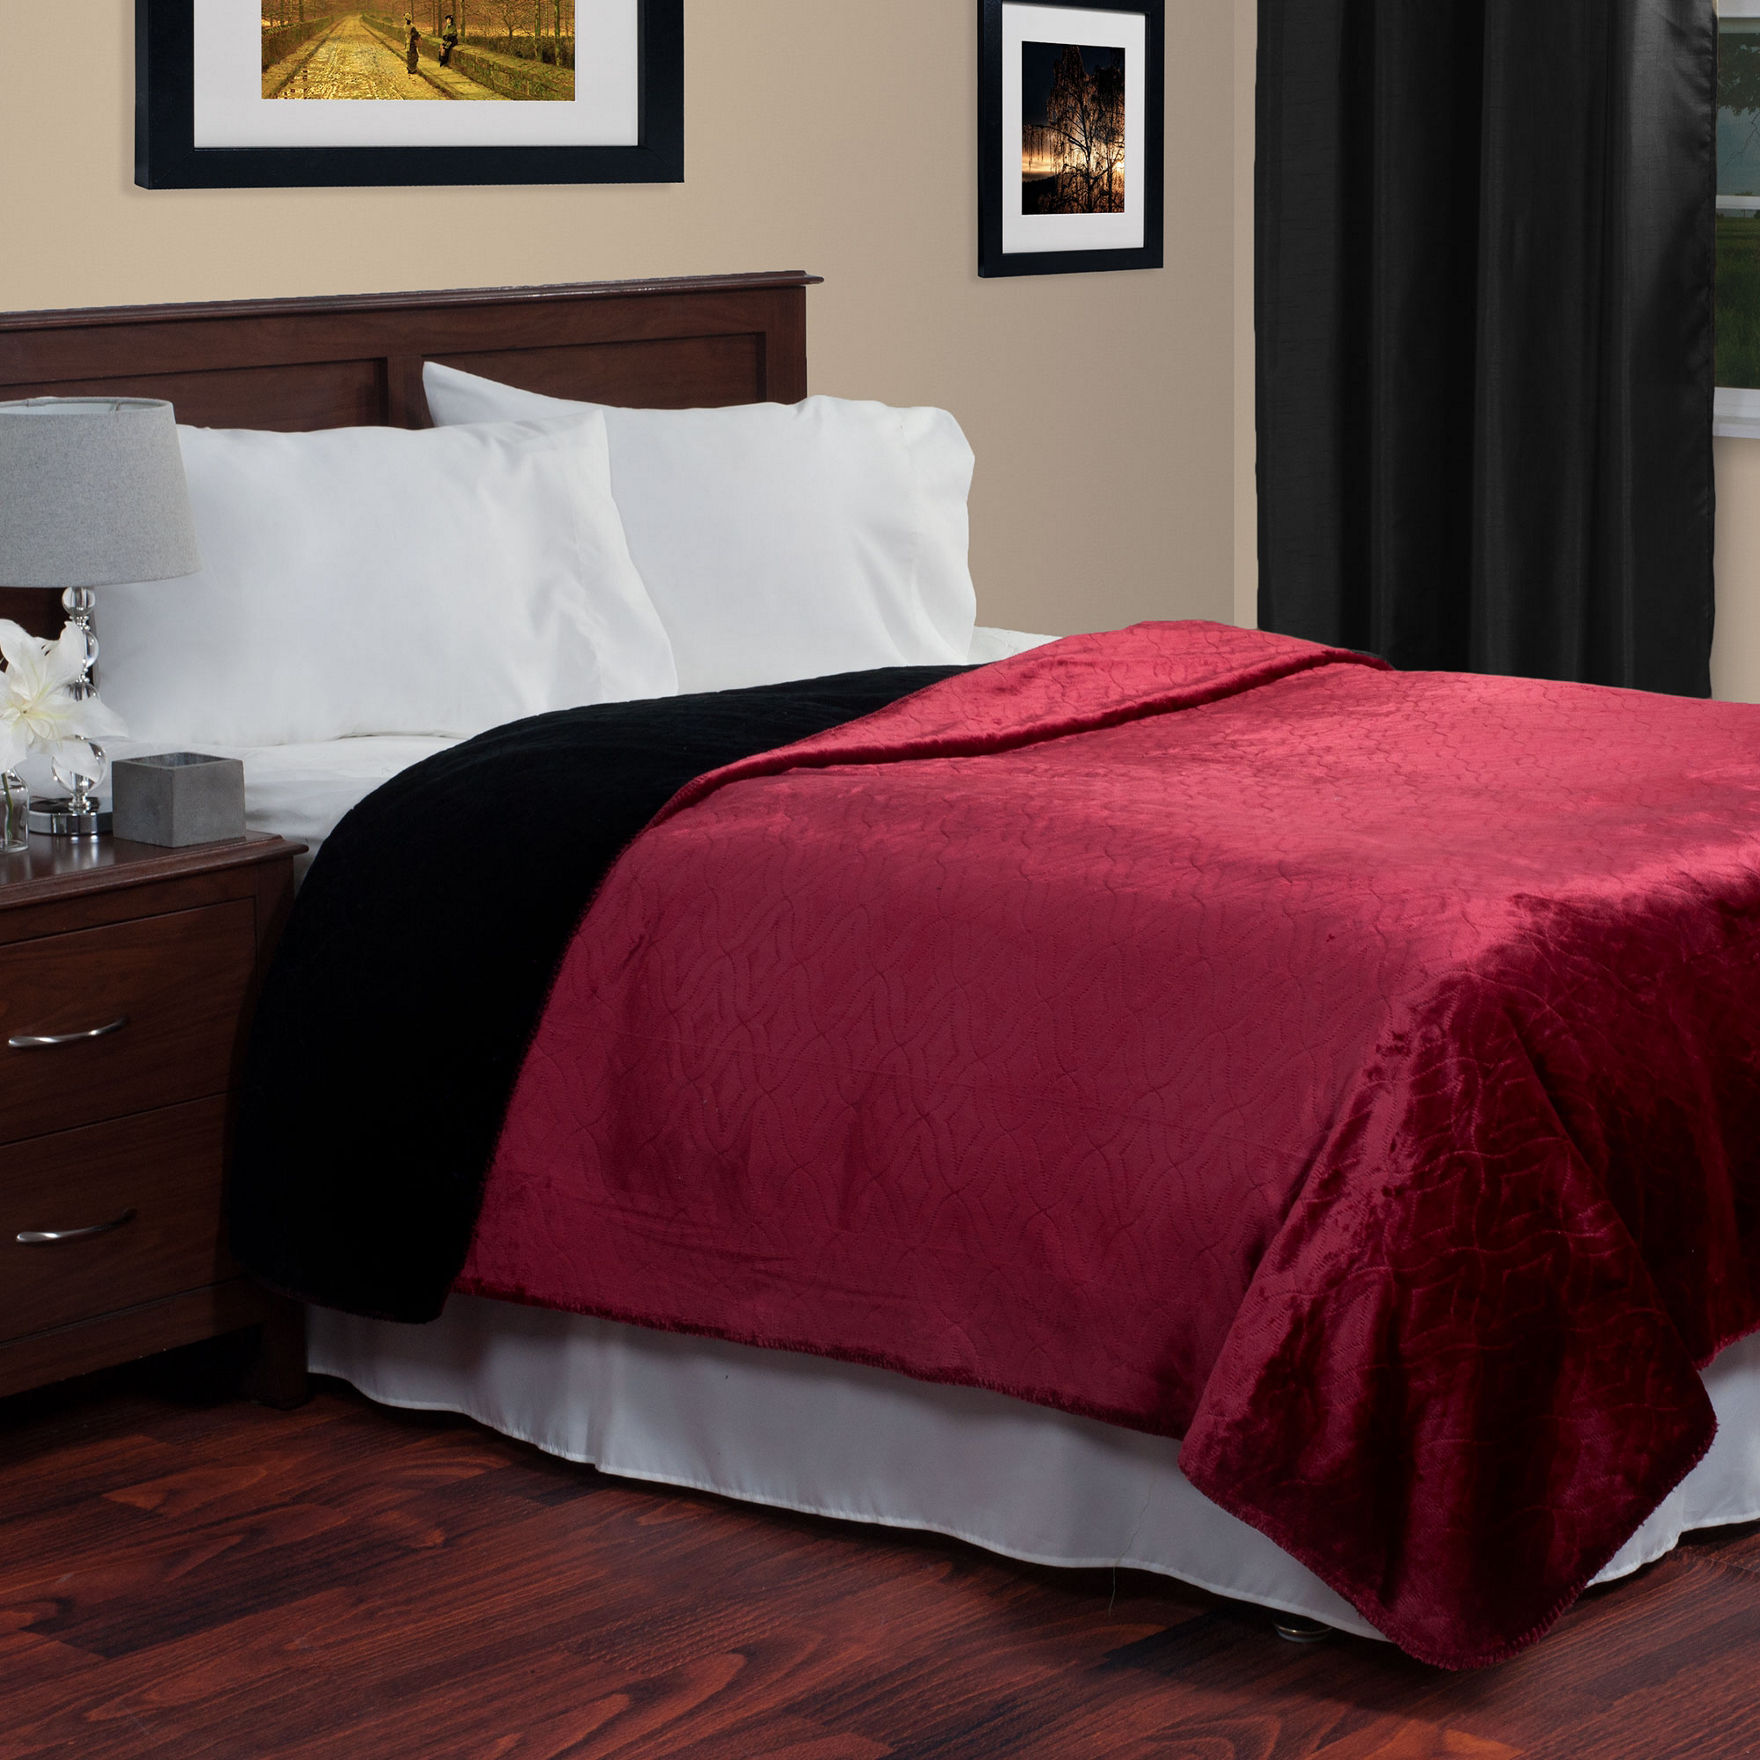 Lavish Home Red / Black Blankets & Throws